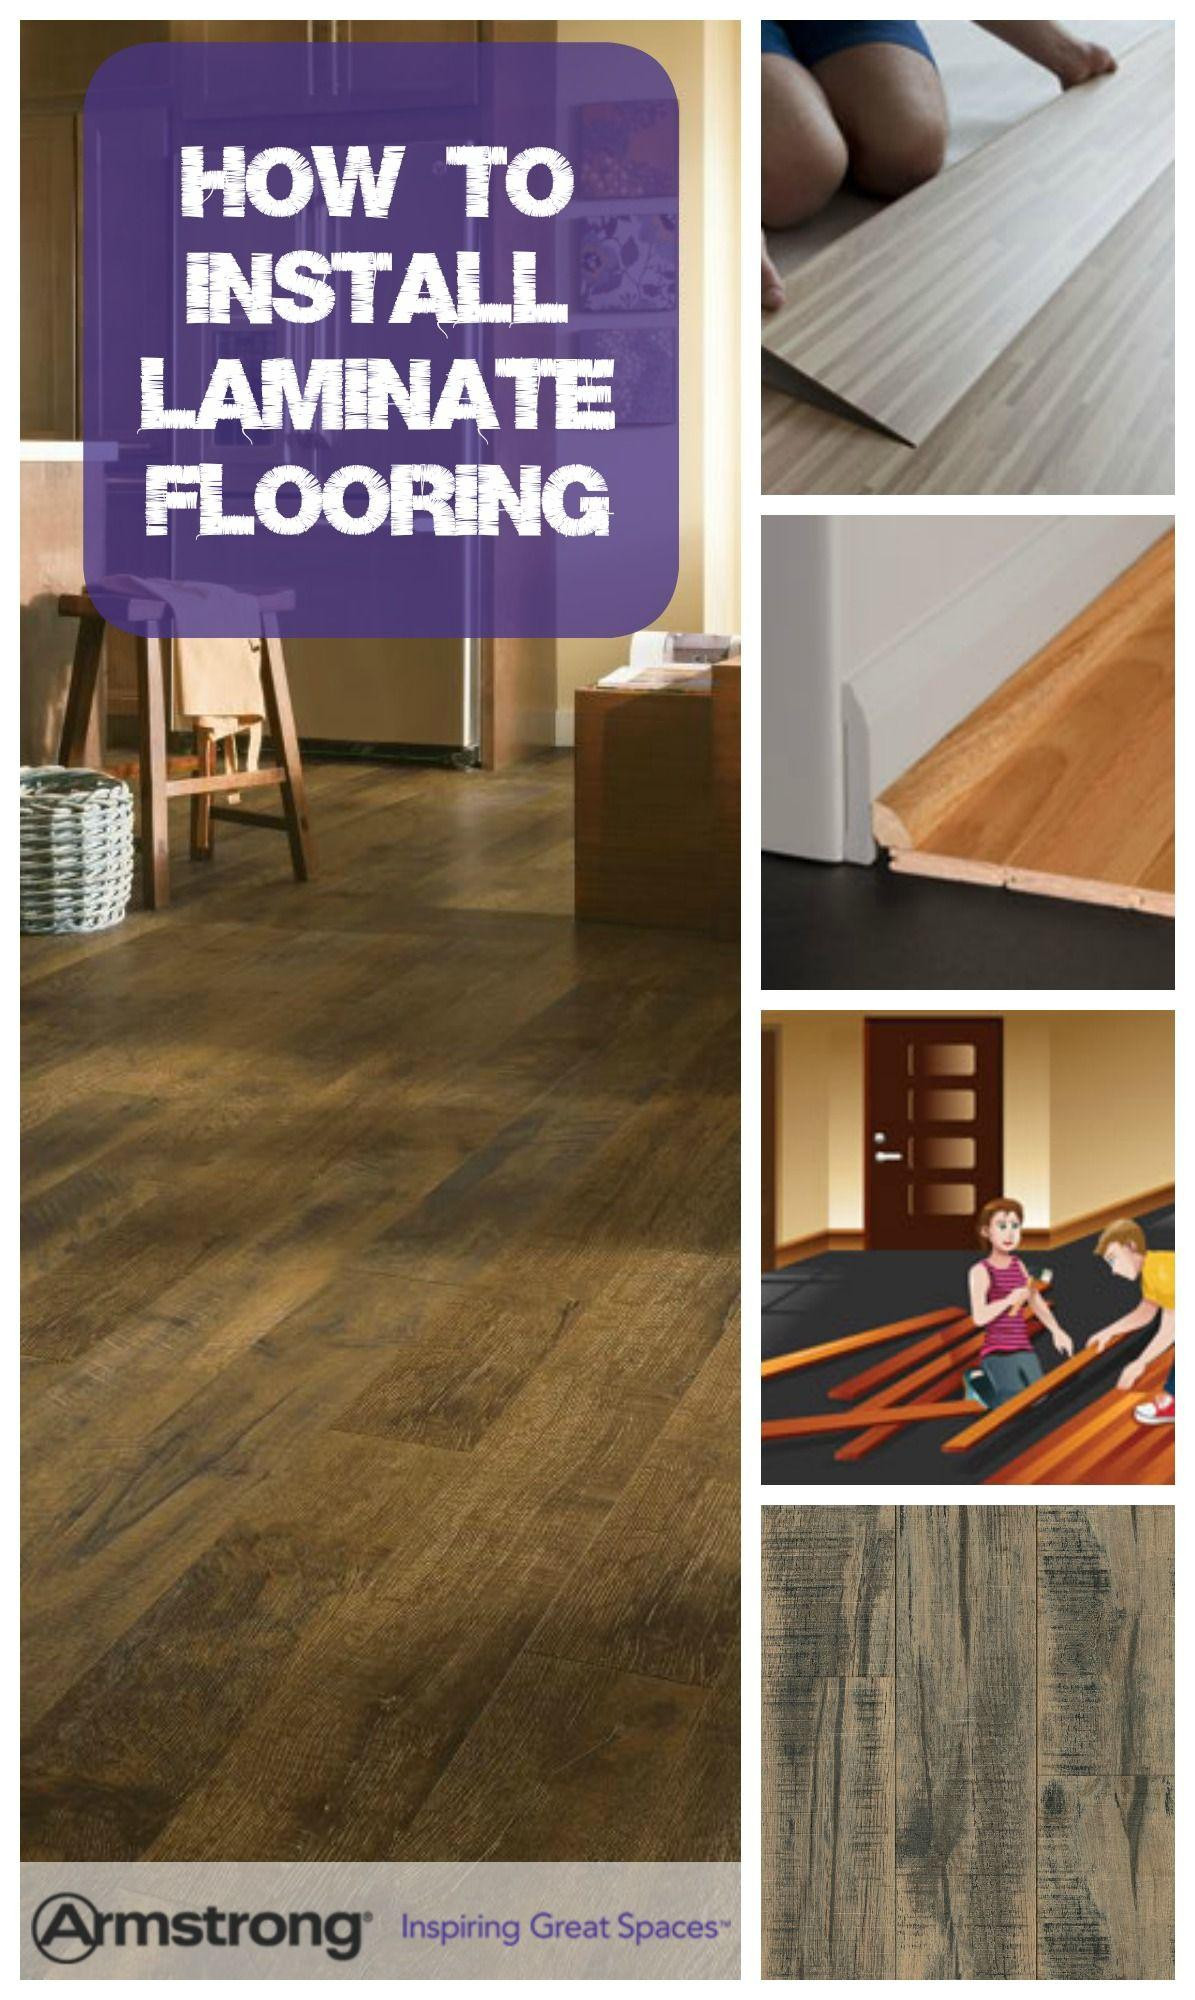 hardwood floor installation syracuse ny of 15 diy wood floor installation on a budget economyinnbeebe com throughout how do you install laminate flooring we ve got all you need to know